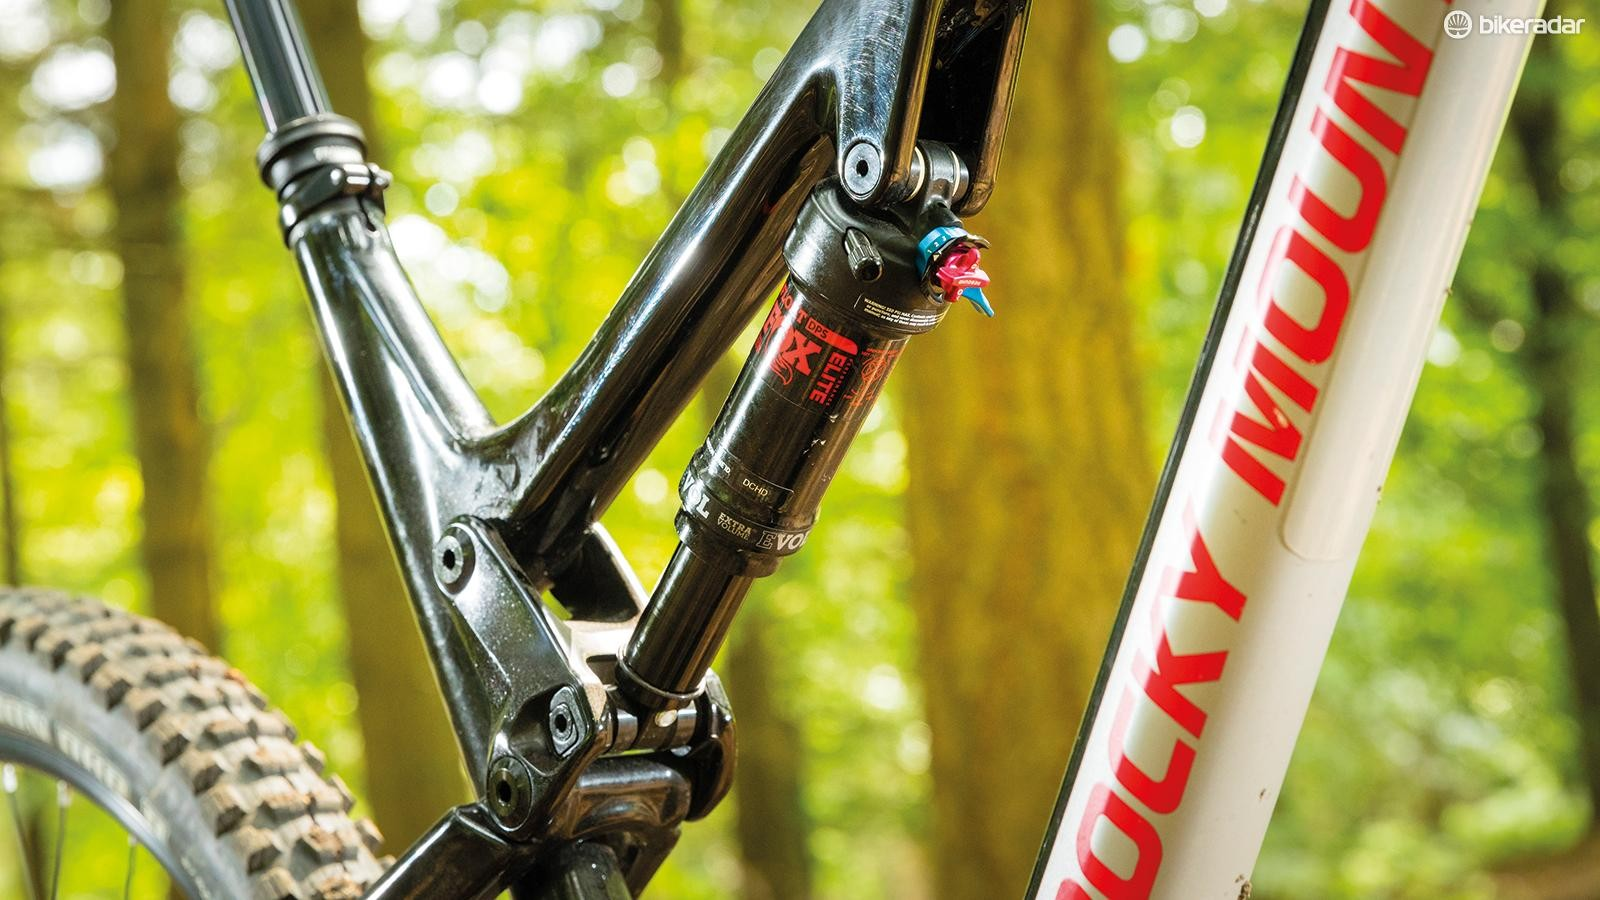 We'd have liked moremid-stroke support fromthe Fox DPS EVOL shock